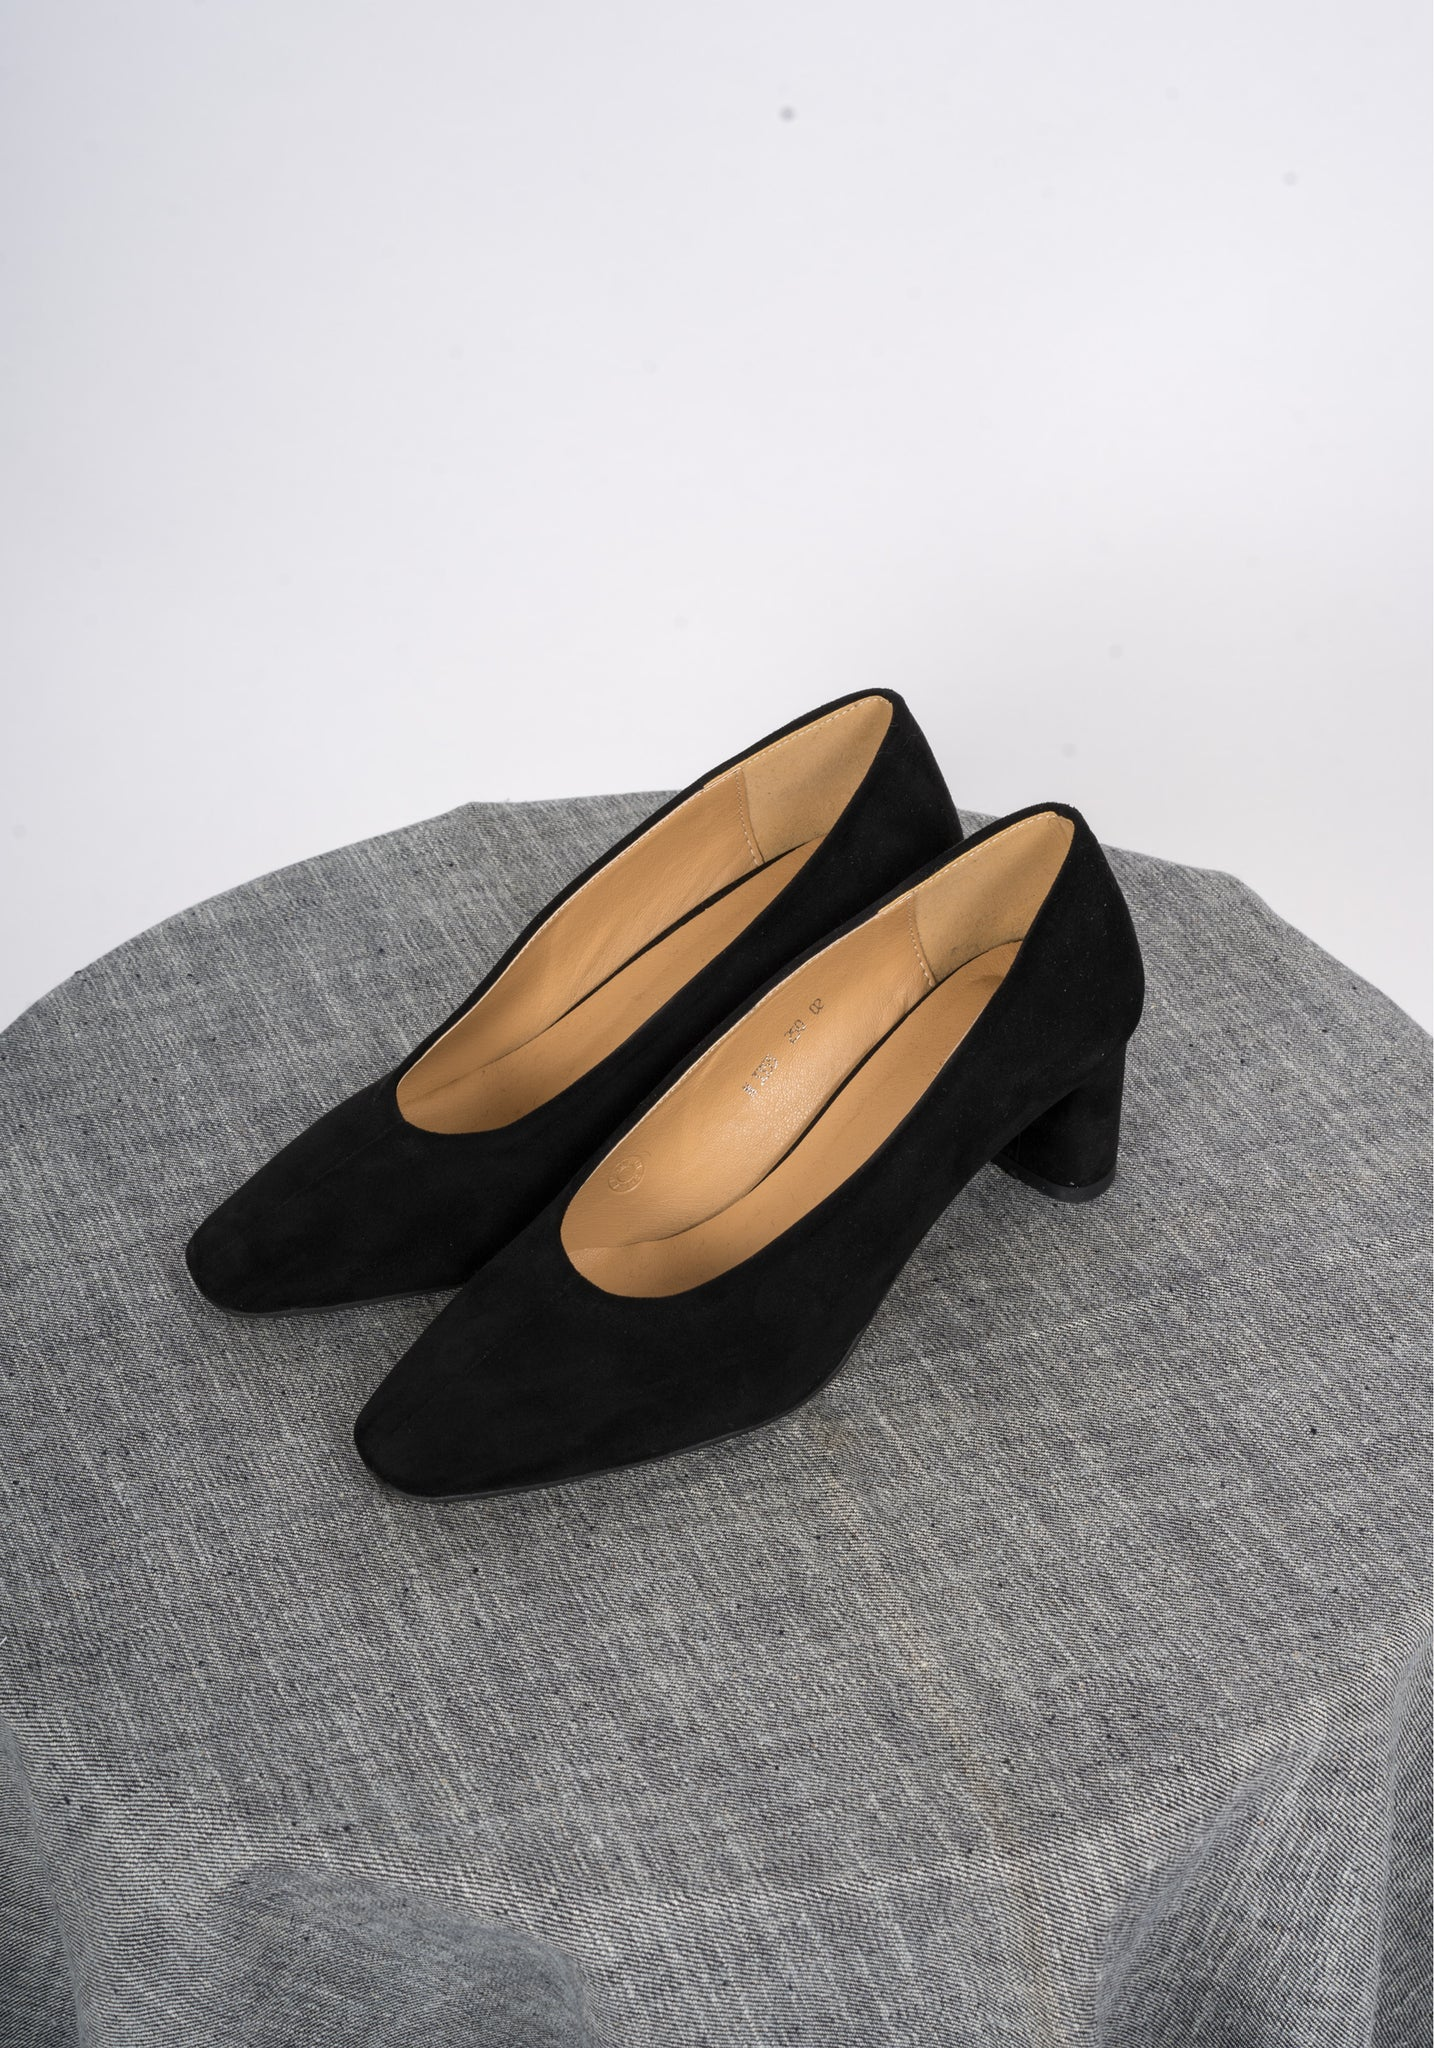 Sample Shoes - Alanis Suede Heels - whoami